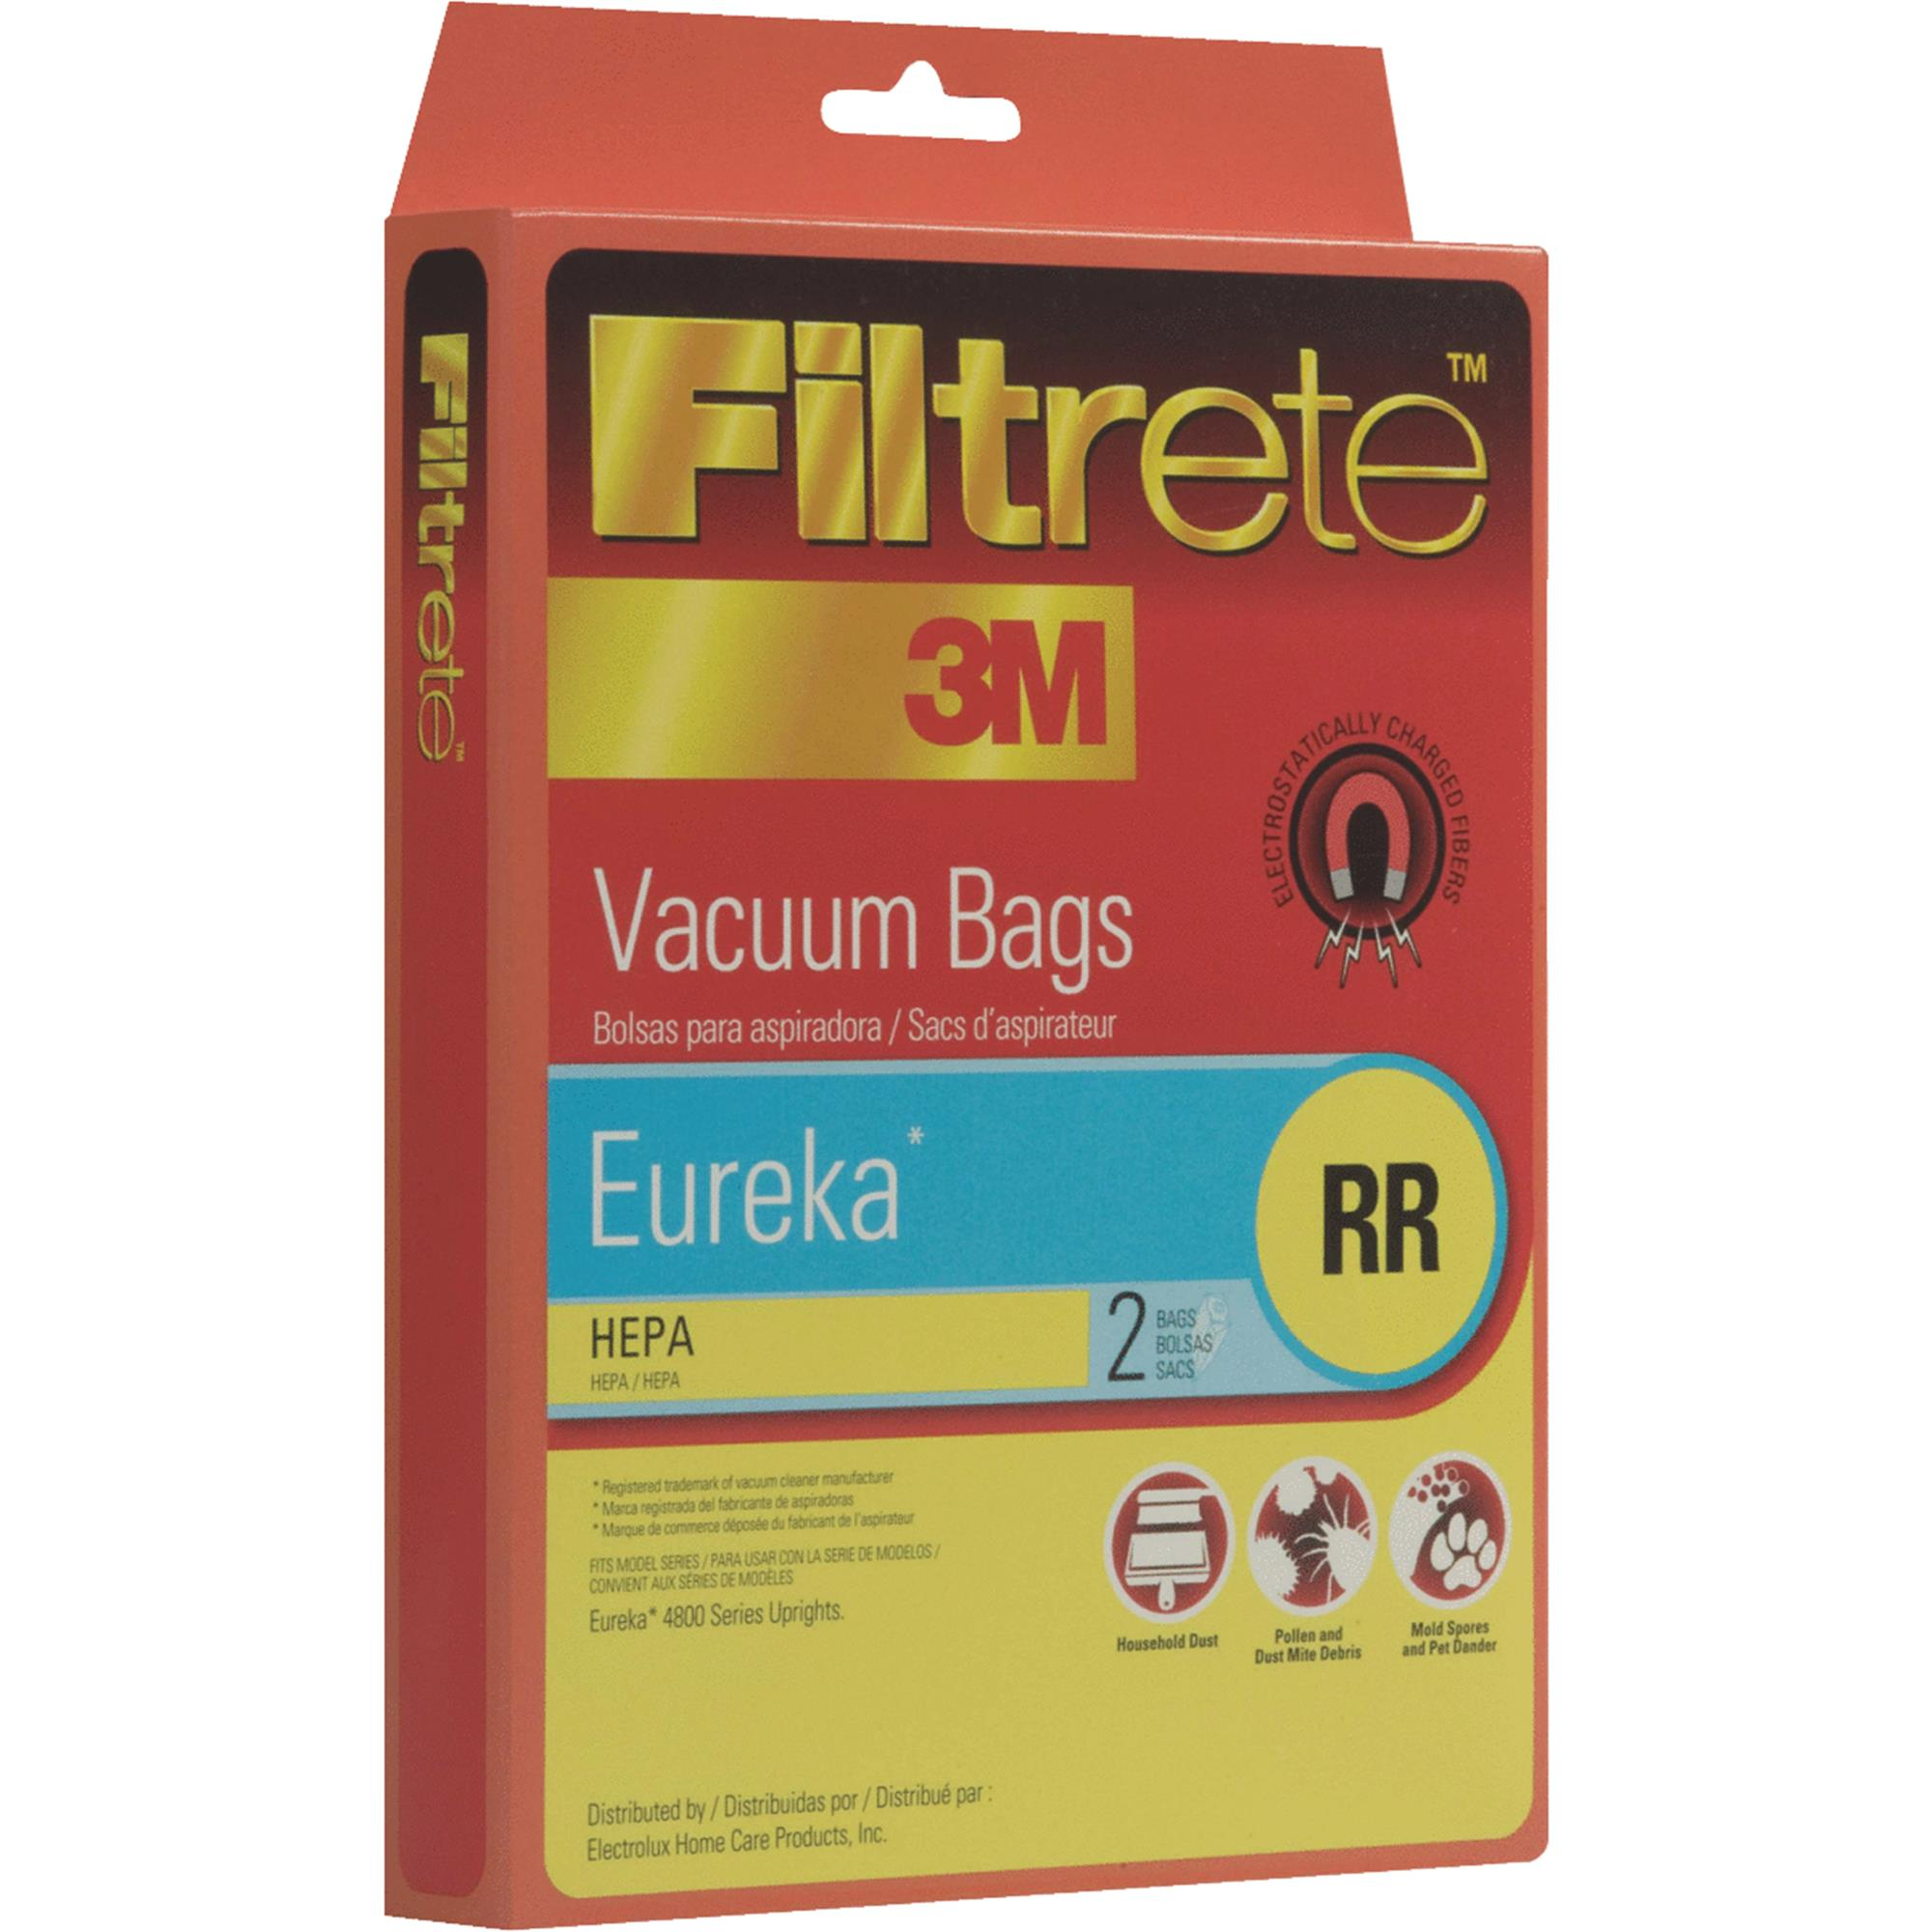 Electrolux Home Care-Eureka RR HEPA Bag